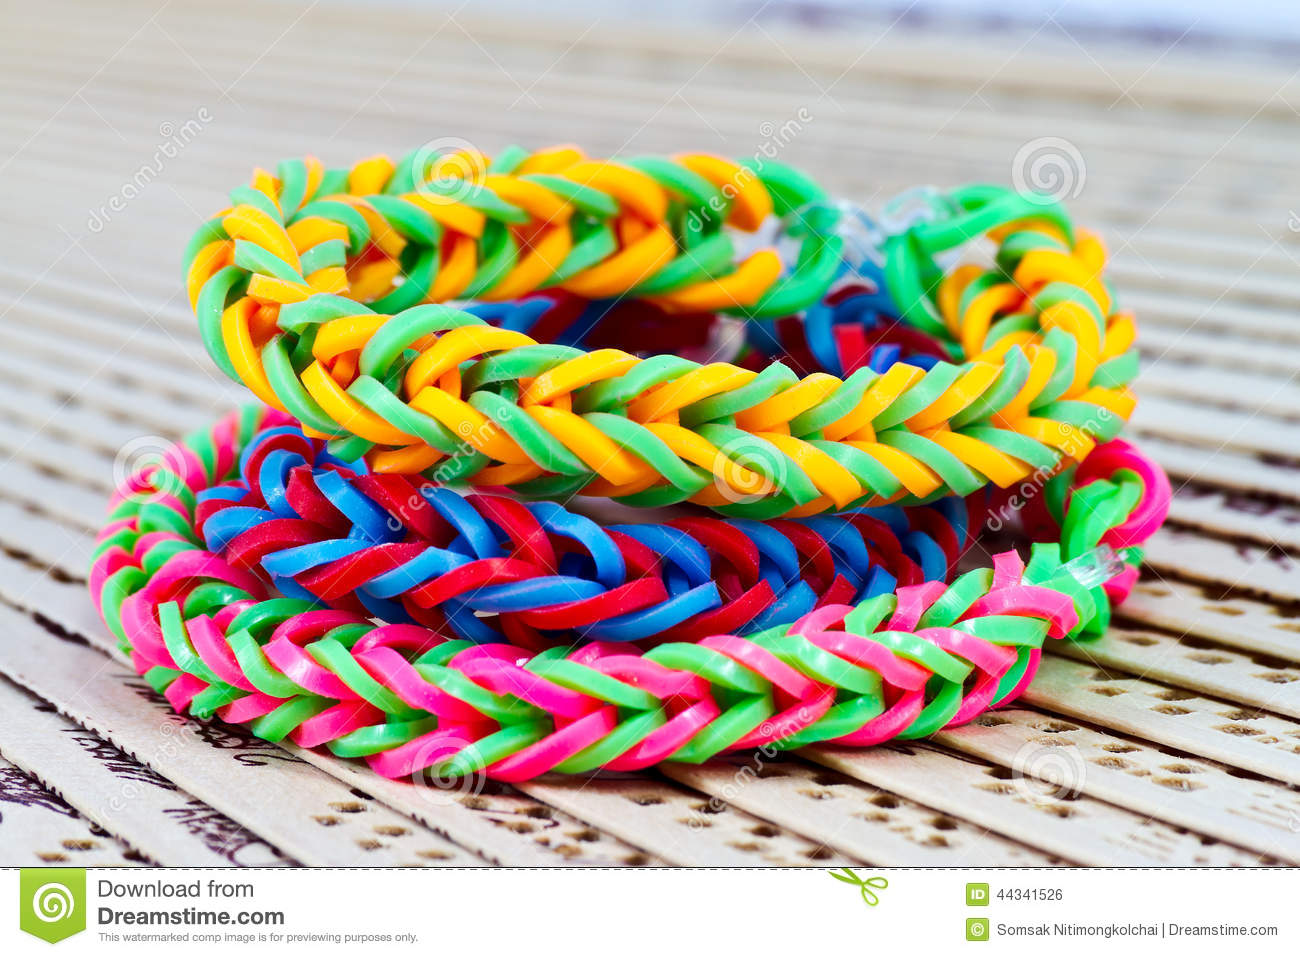 heart image close colorful stock up loom shape fashion bands photo myshoplah band rubber love bracelet wit rainbow